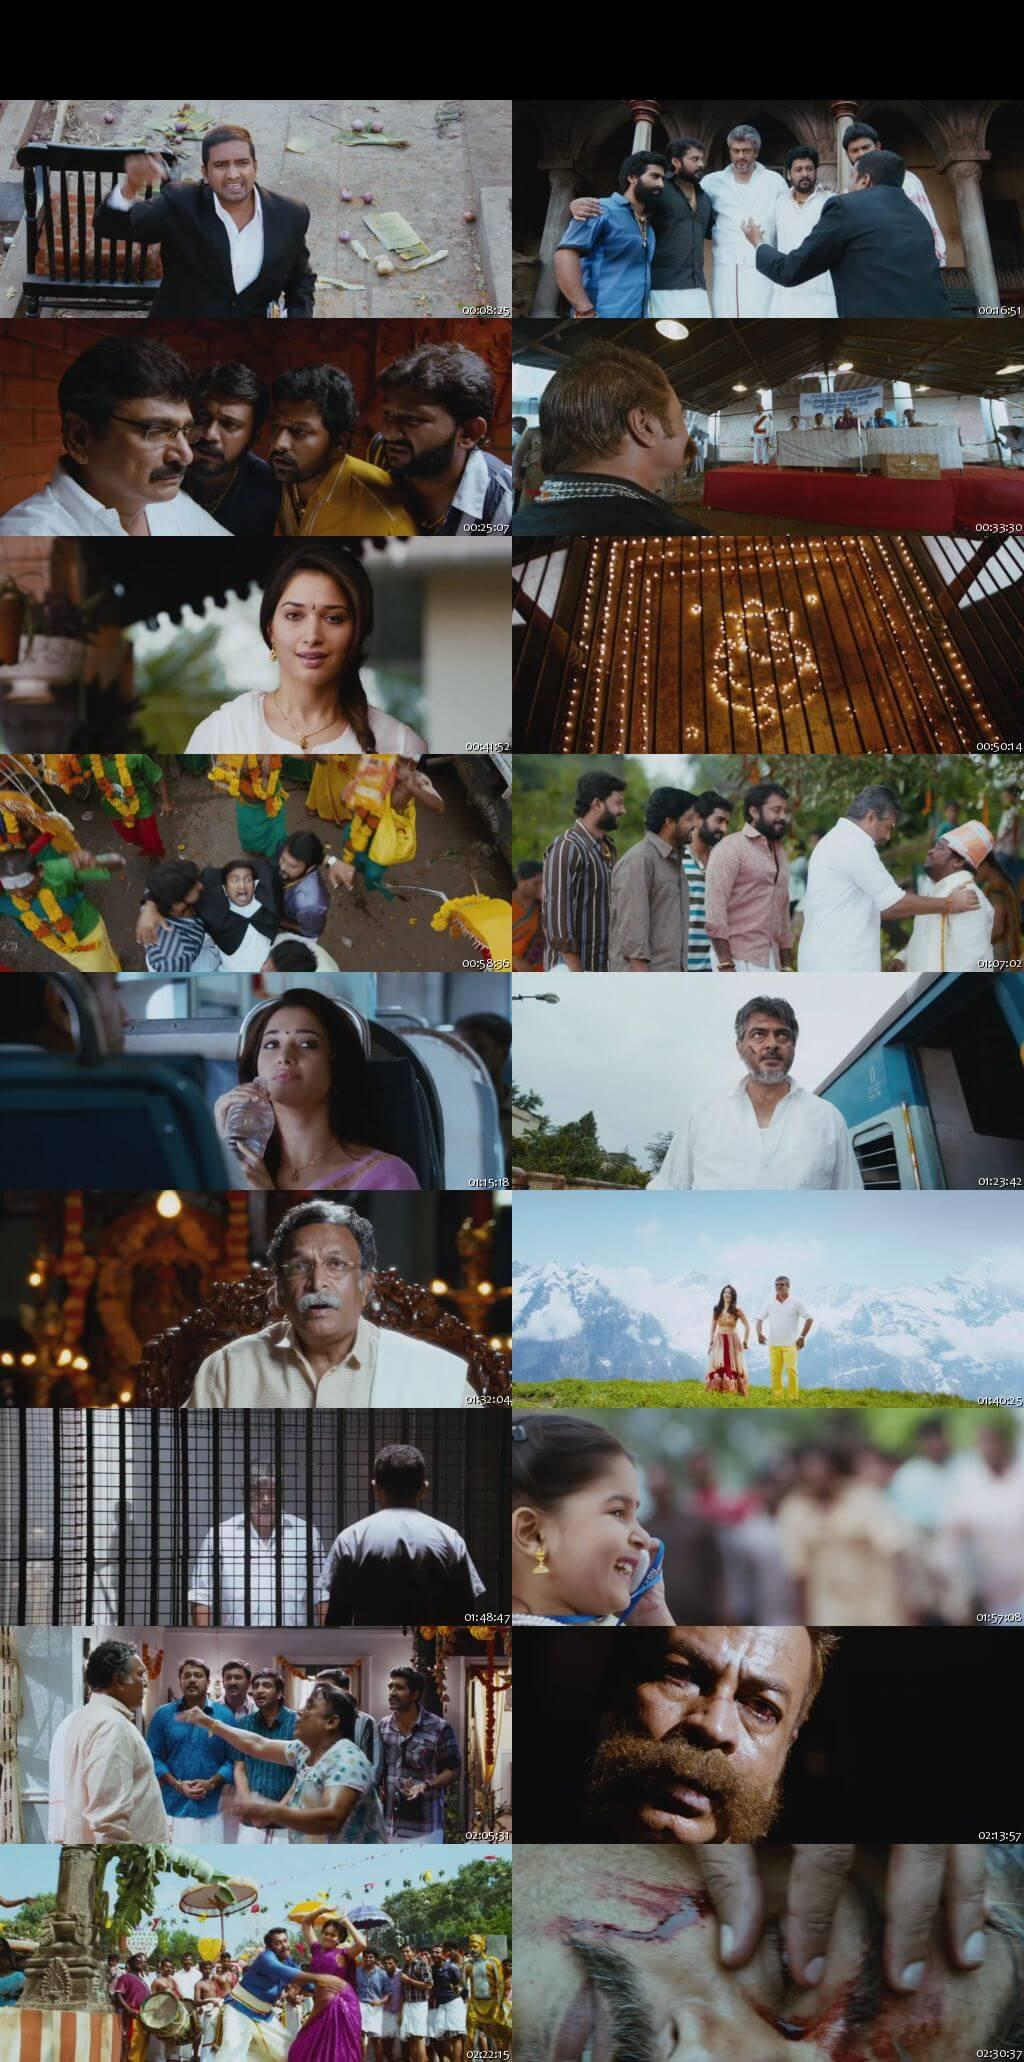 Single Resumable Download Link For Movie Veeram (2014) Download And Watch Online For Free